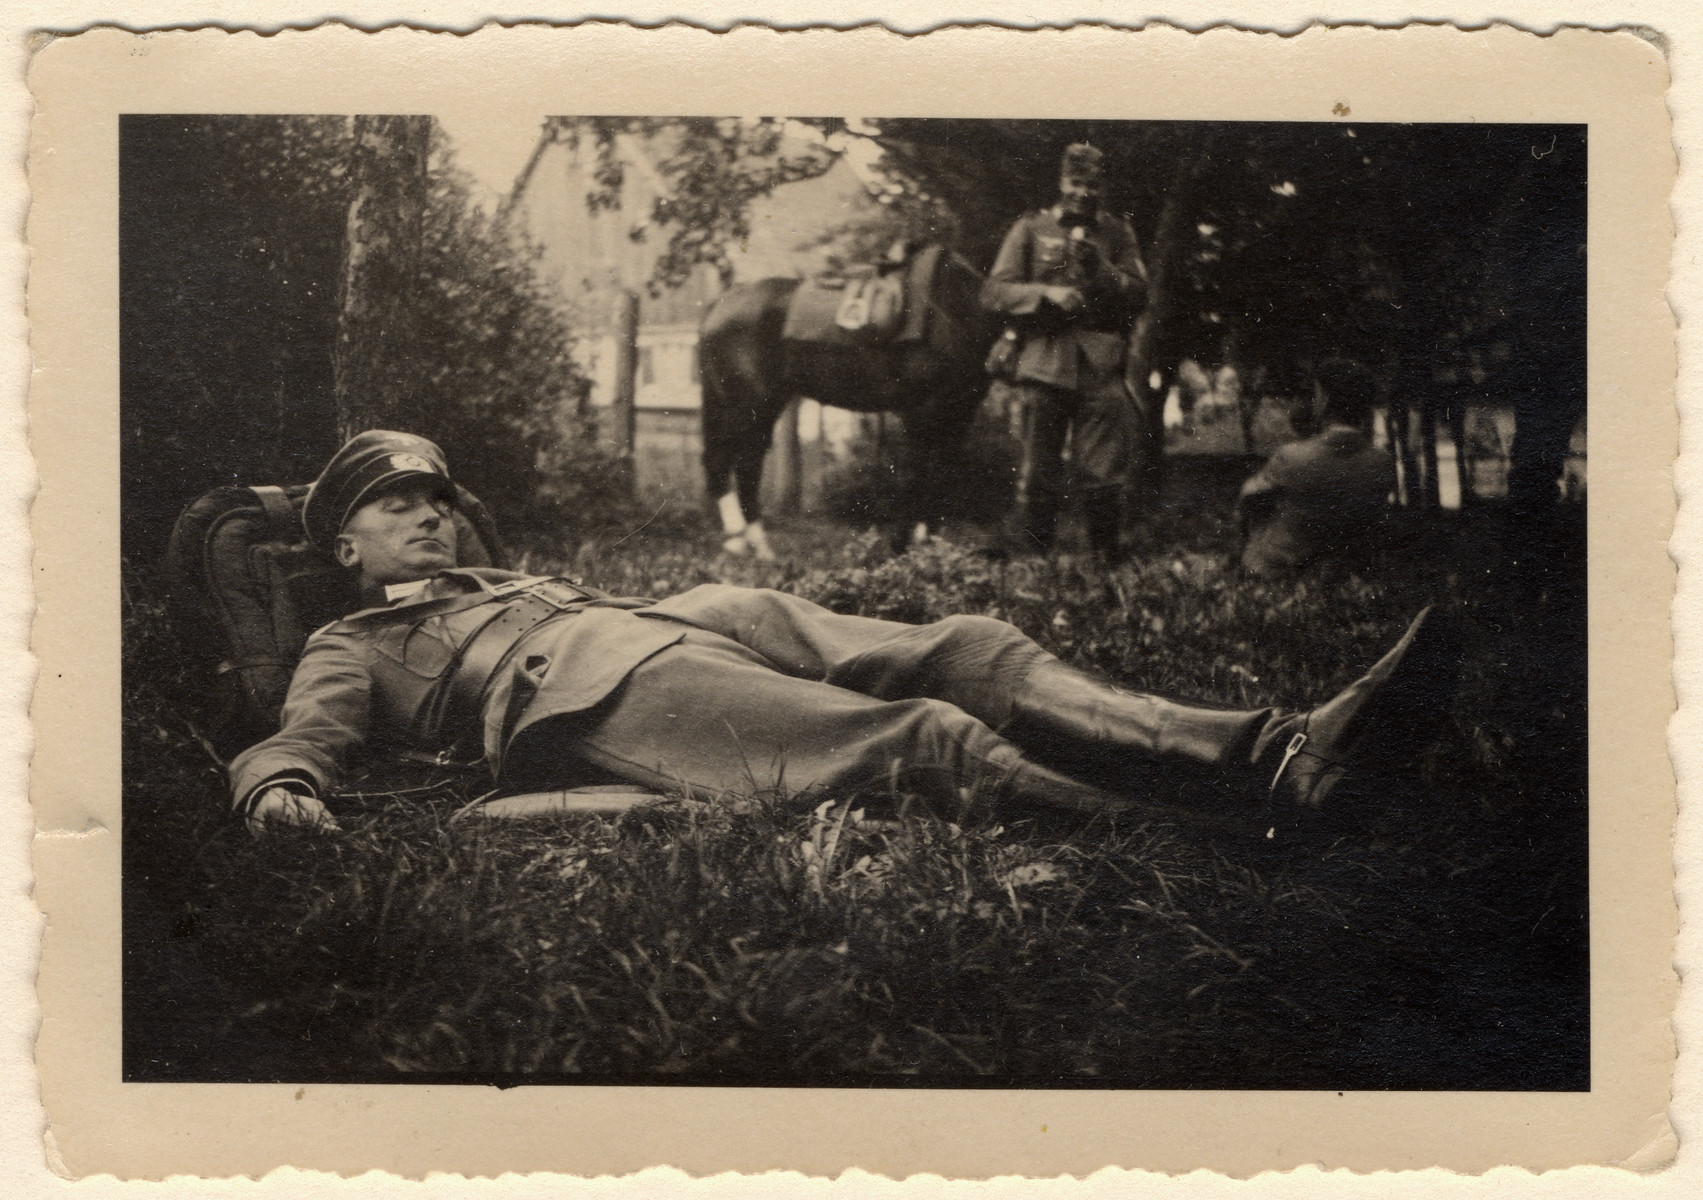 A soldier sleeps with his knapsack as a pillow.